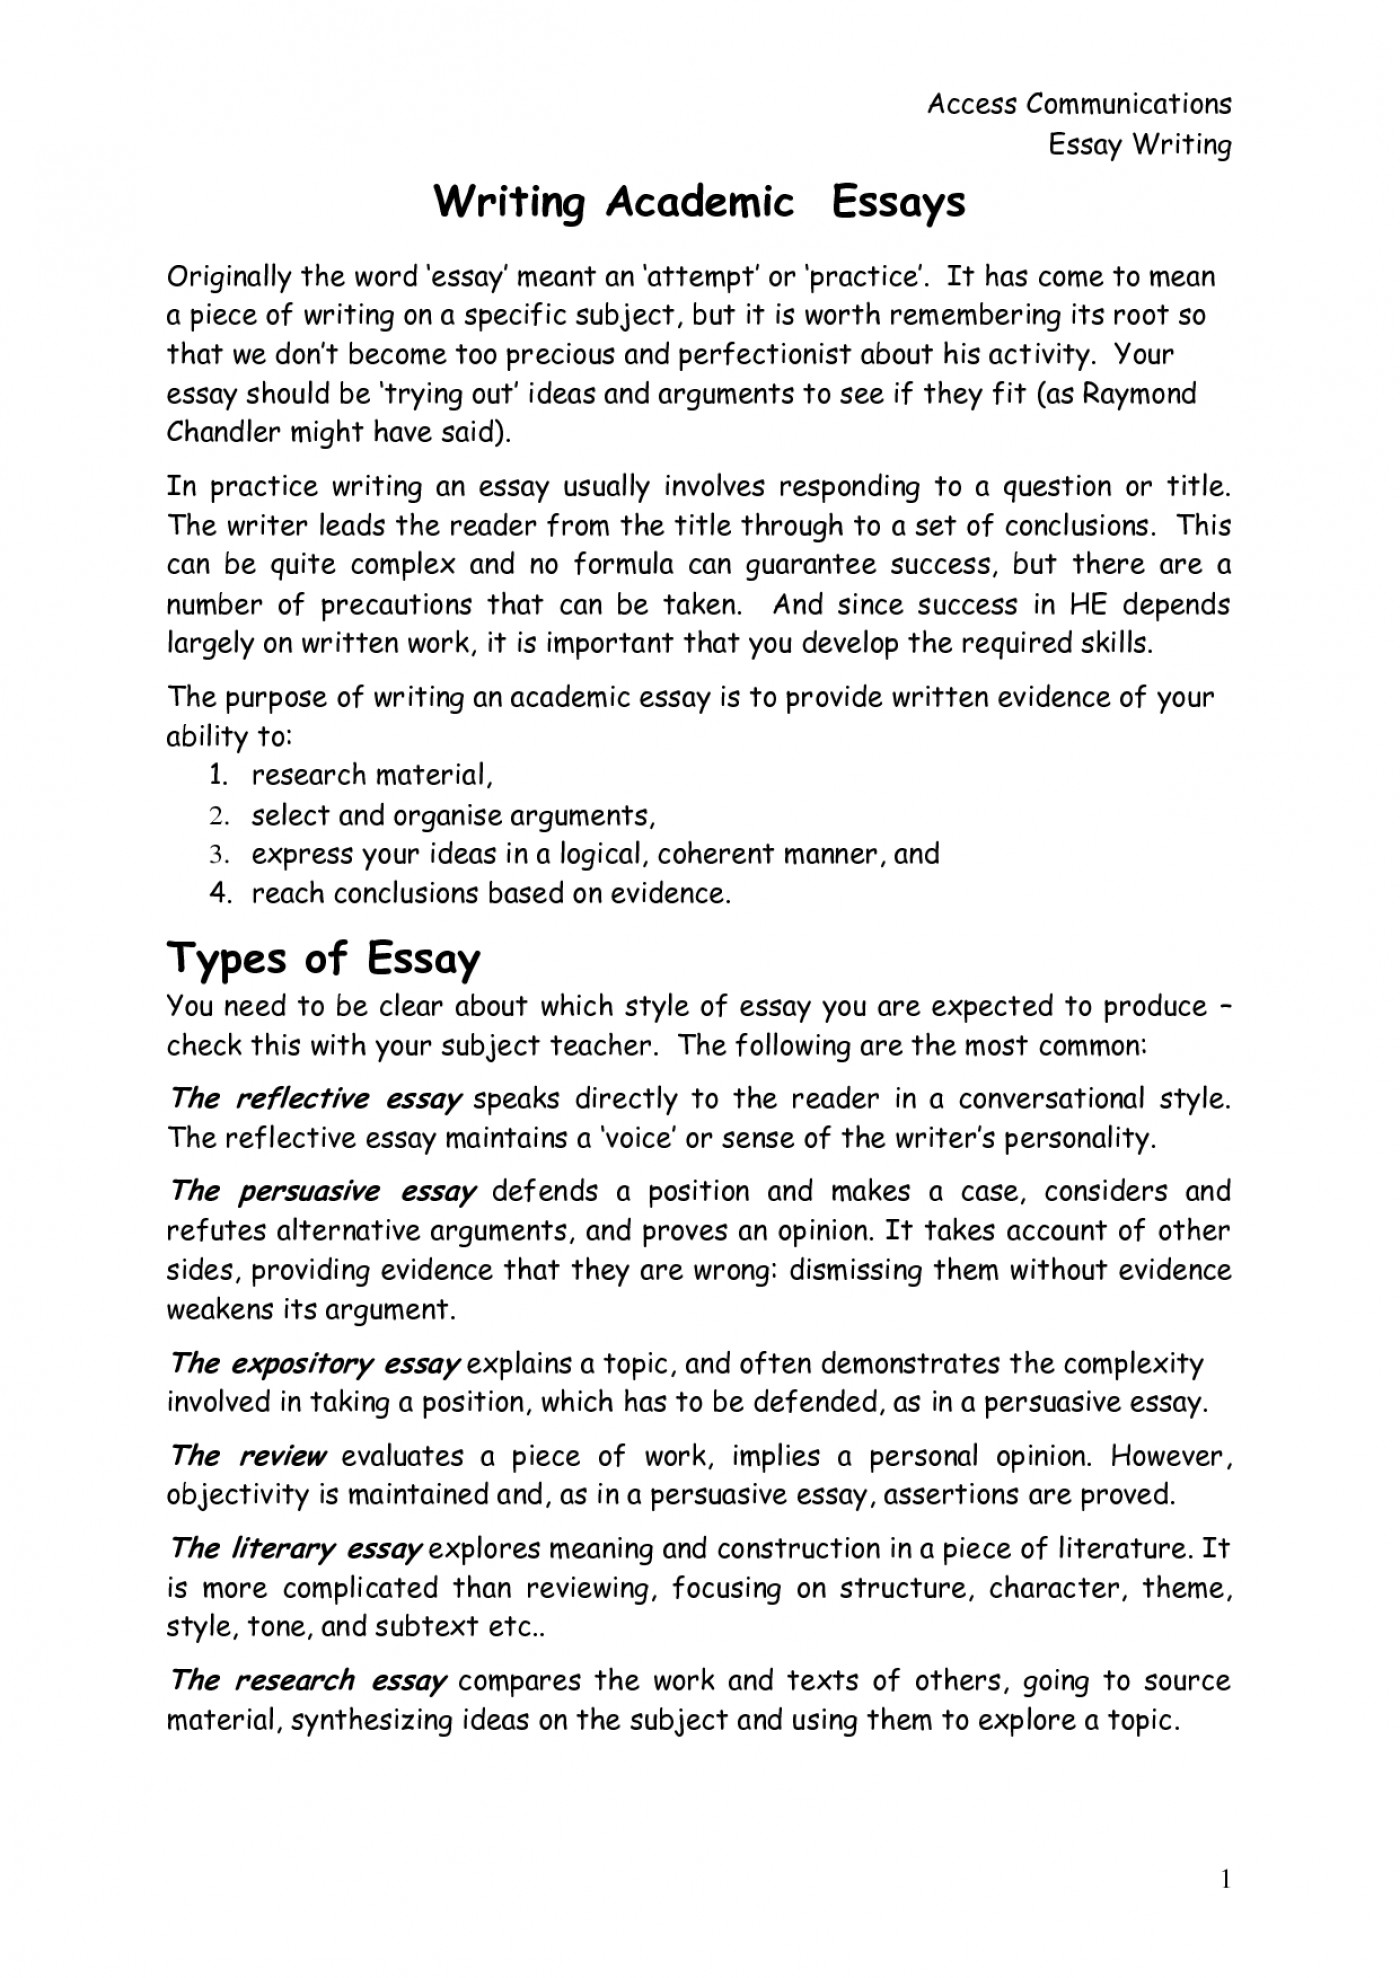 017 Essay Example Write For Me Amazing My Generator Free Online 1400